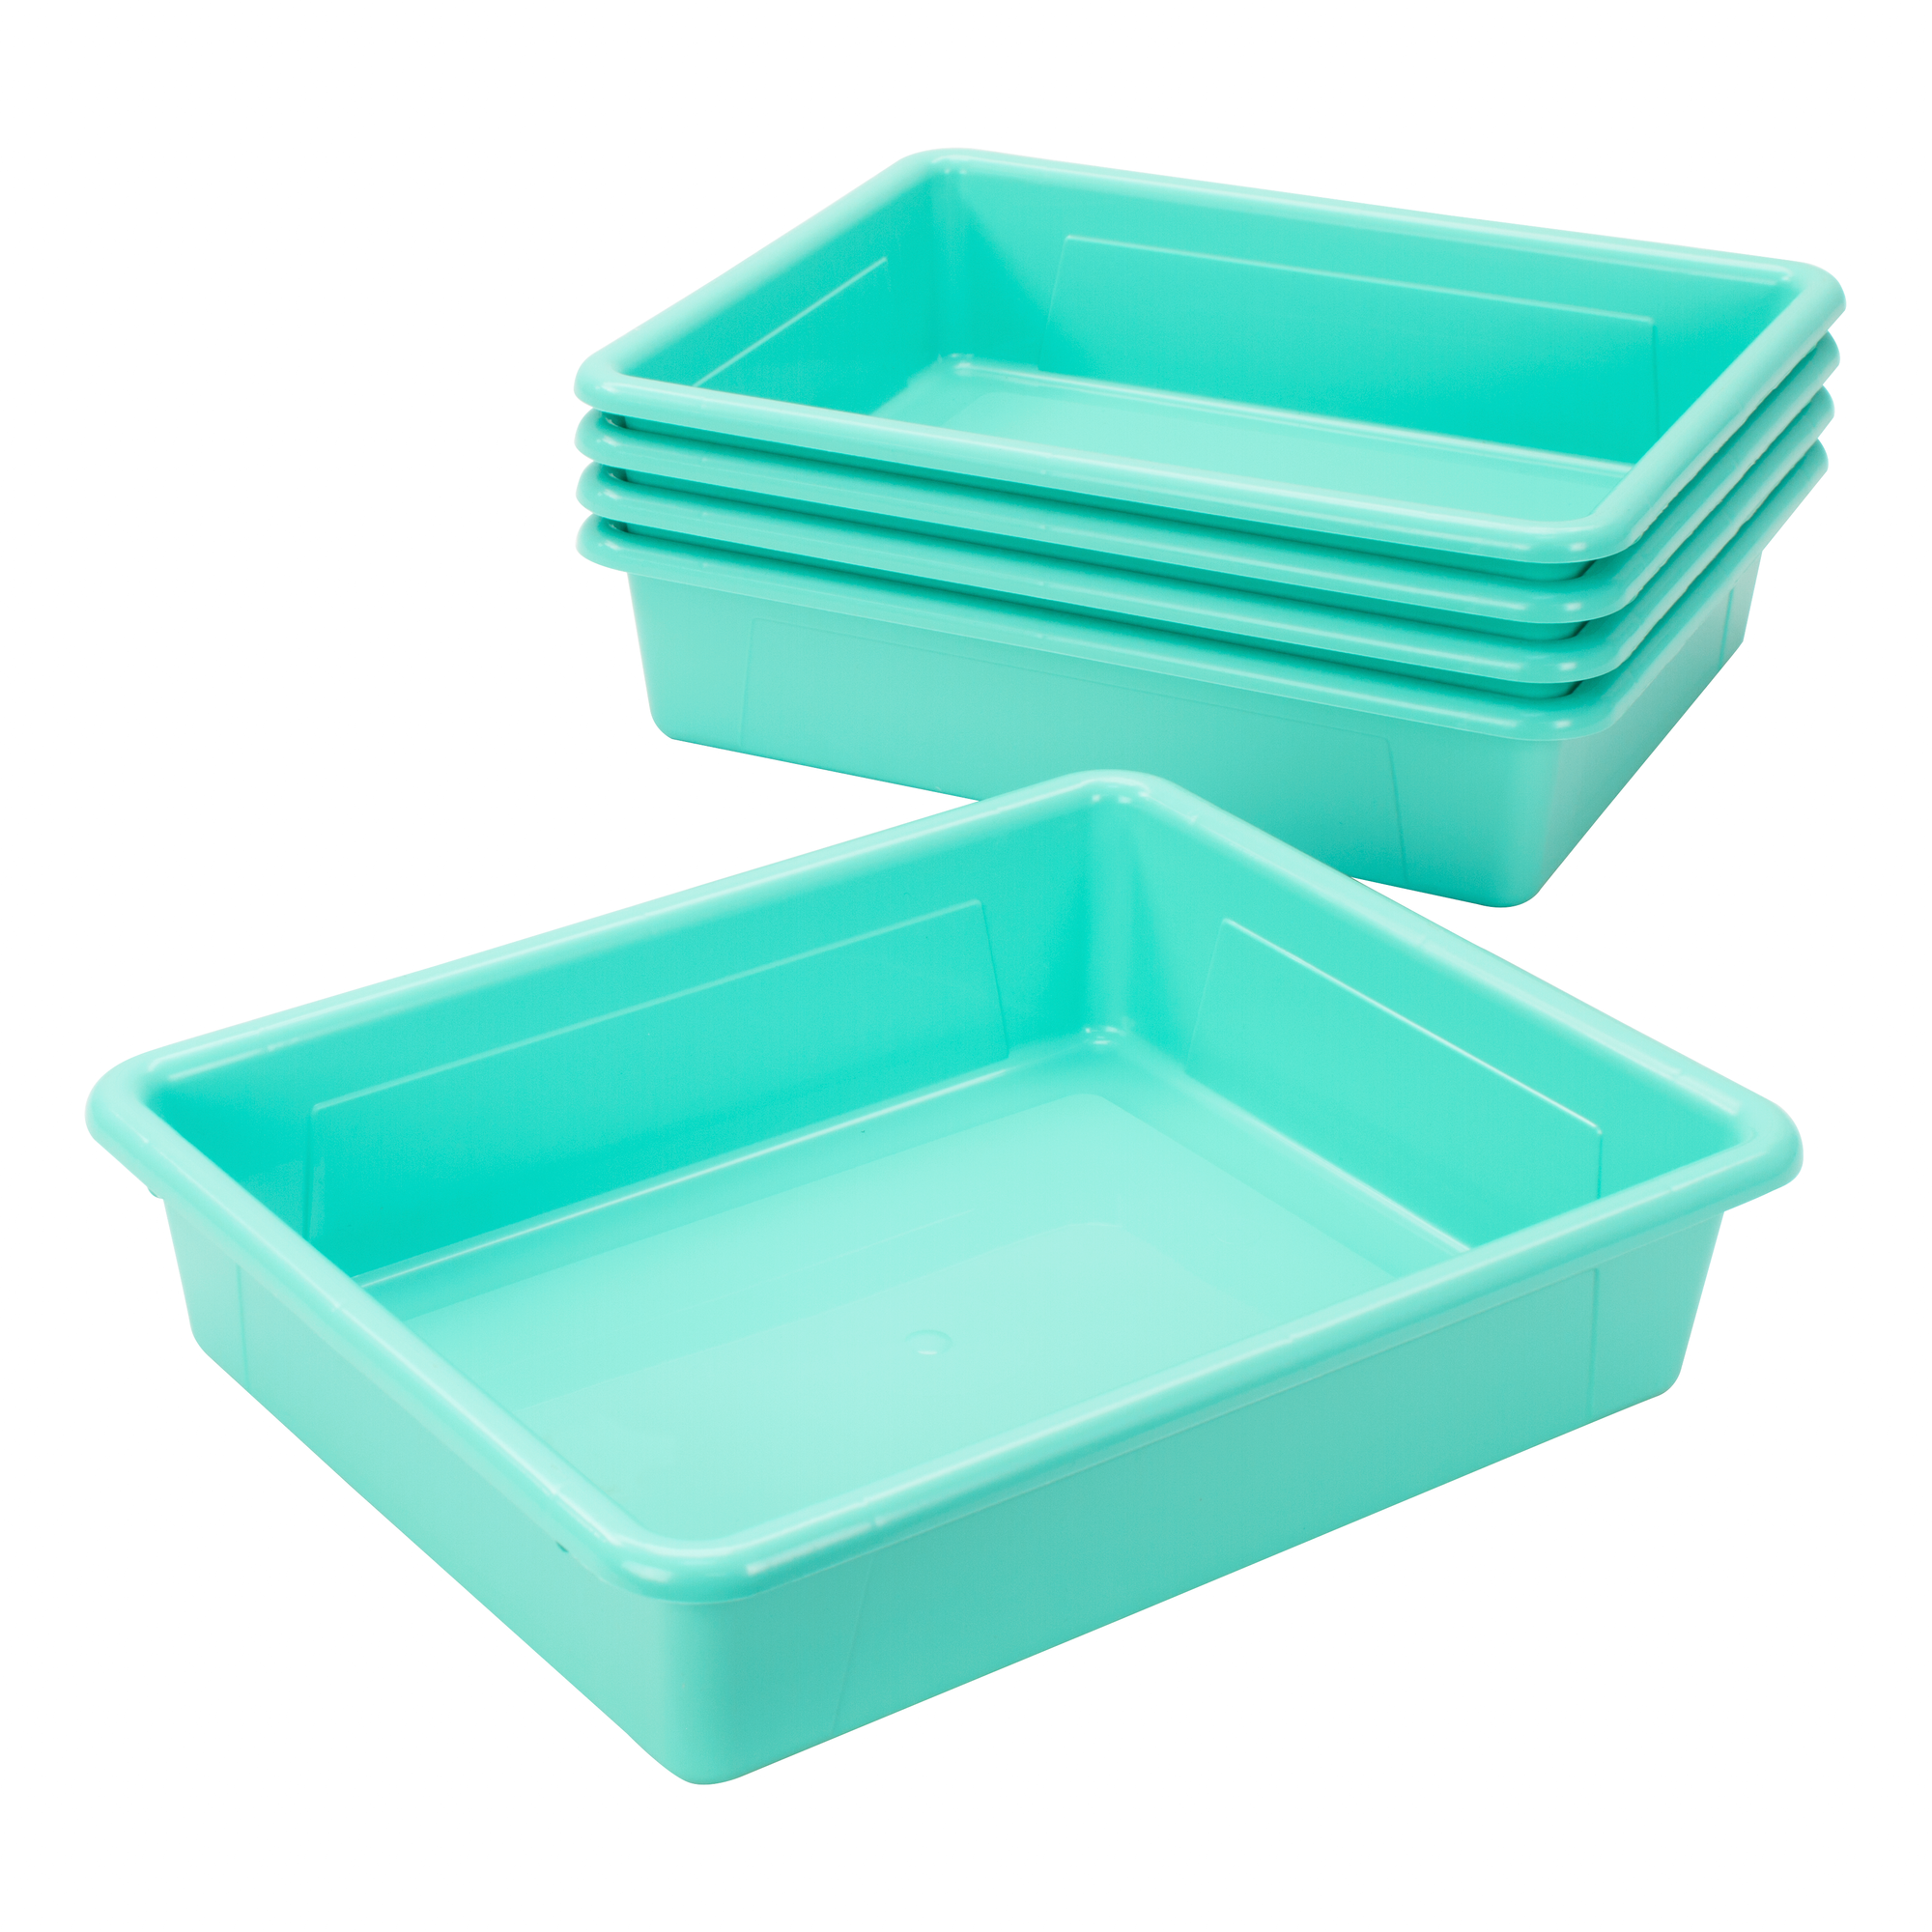 Storex Storage Tray, Letter Size, 10 x 13 x 3 Inches, Teal, 5-Pack